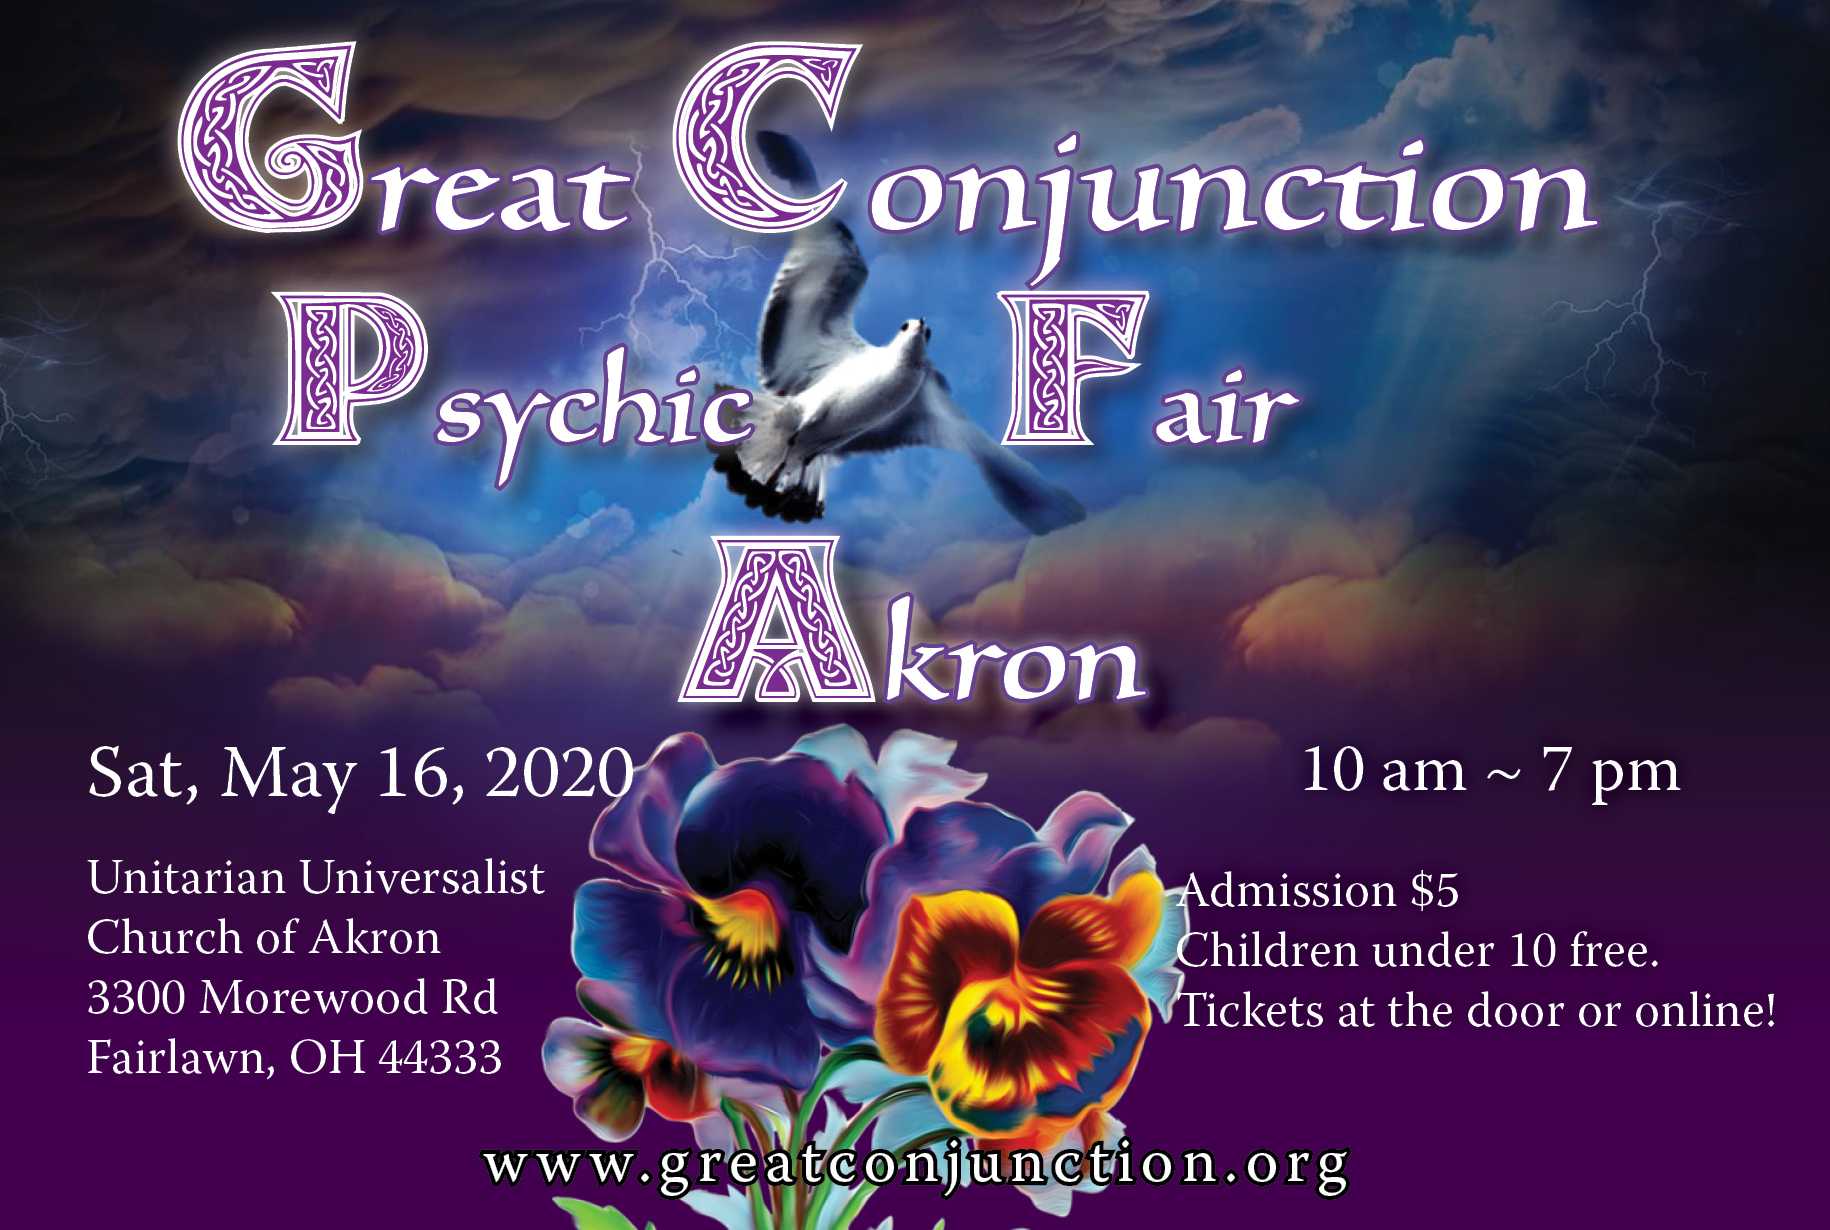 Kansas City Psychic Fair 2020.Great Conjunction Spring Psychic Fair In Akron Presented By